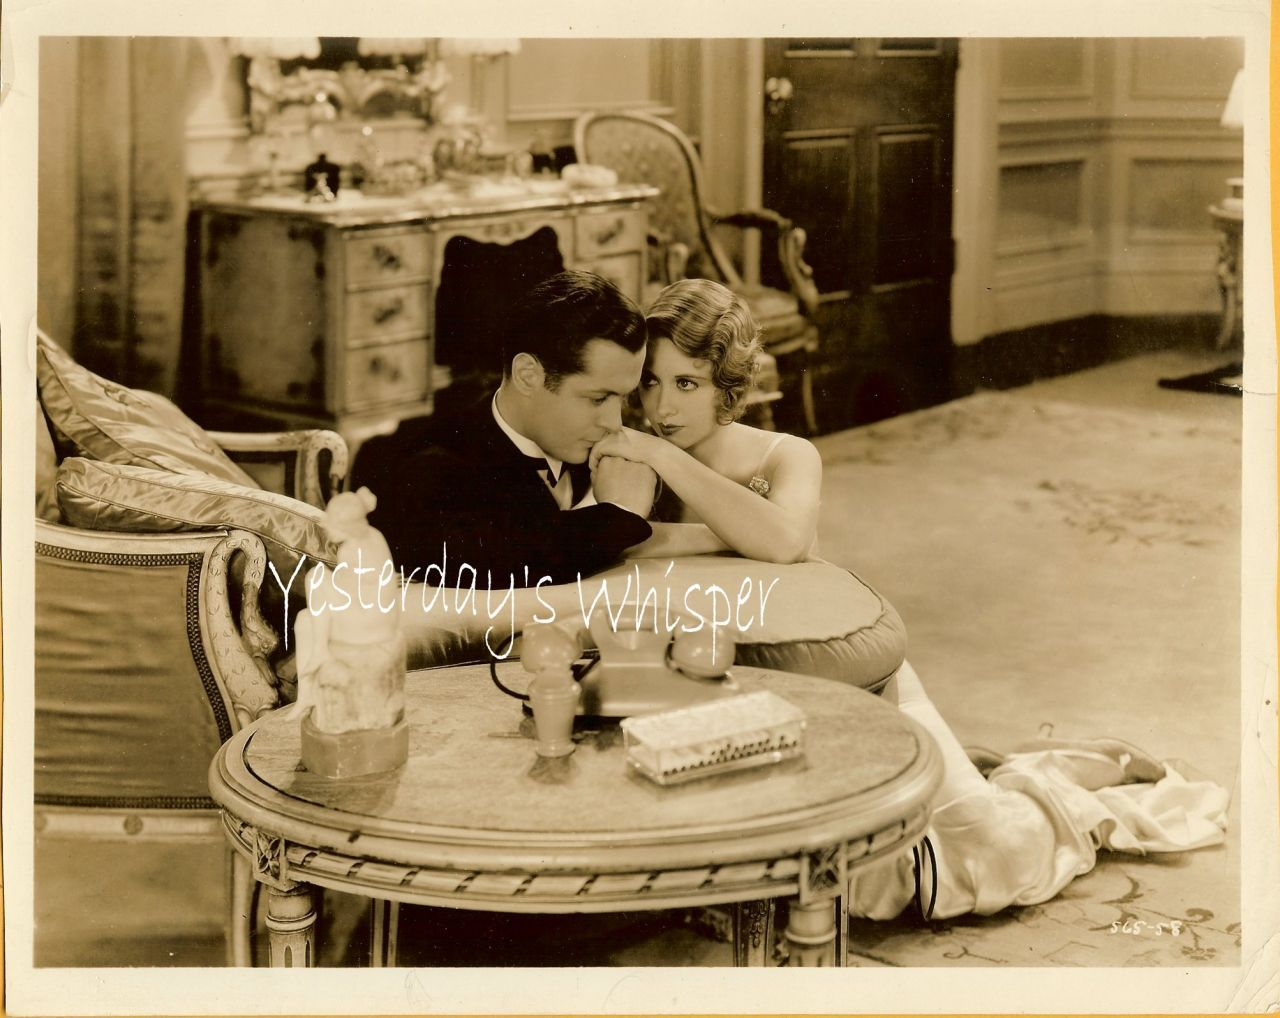 Robert Montgomery Sultry Irene Purcell PRE Code Photo